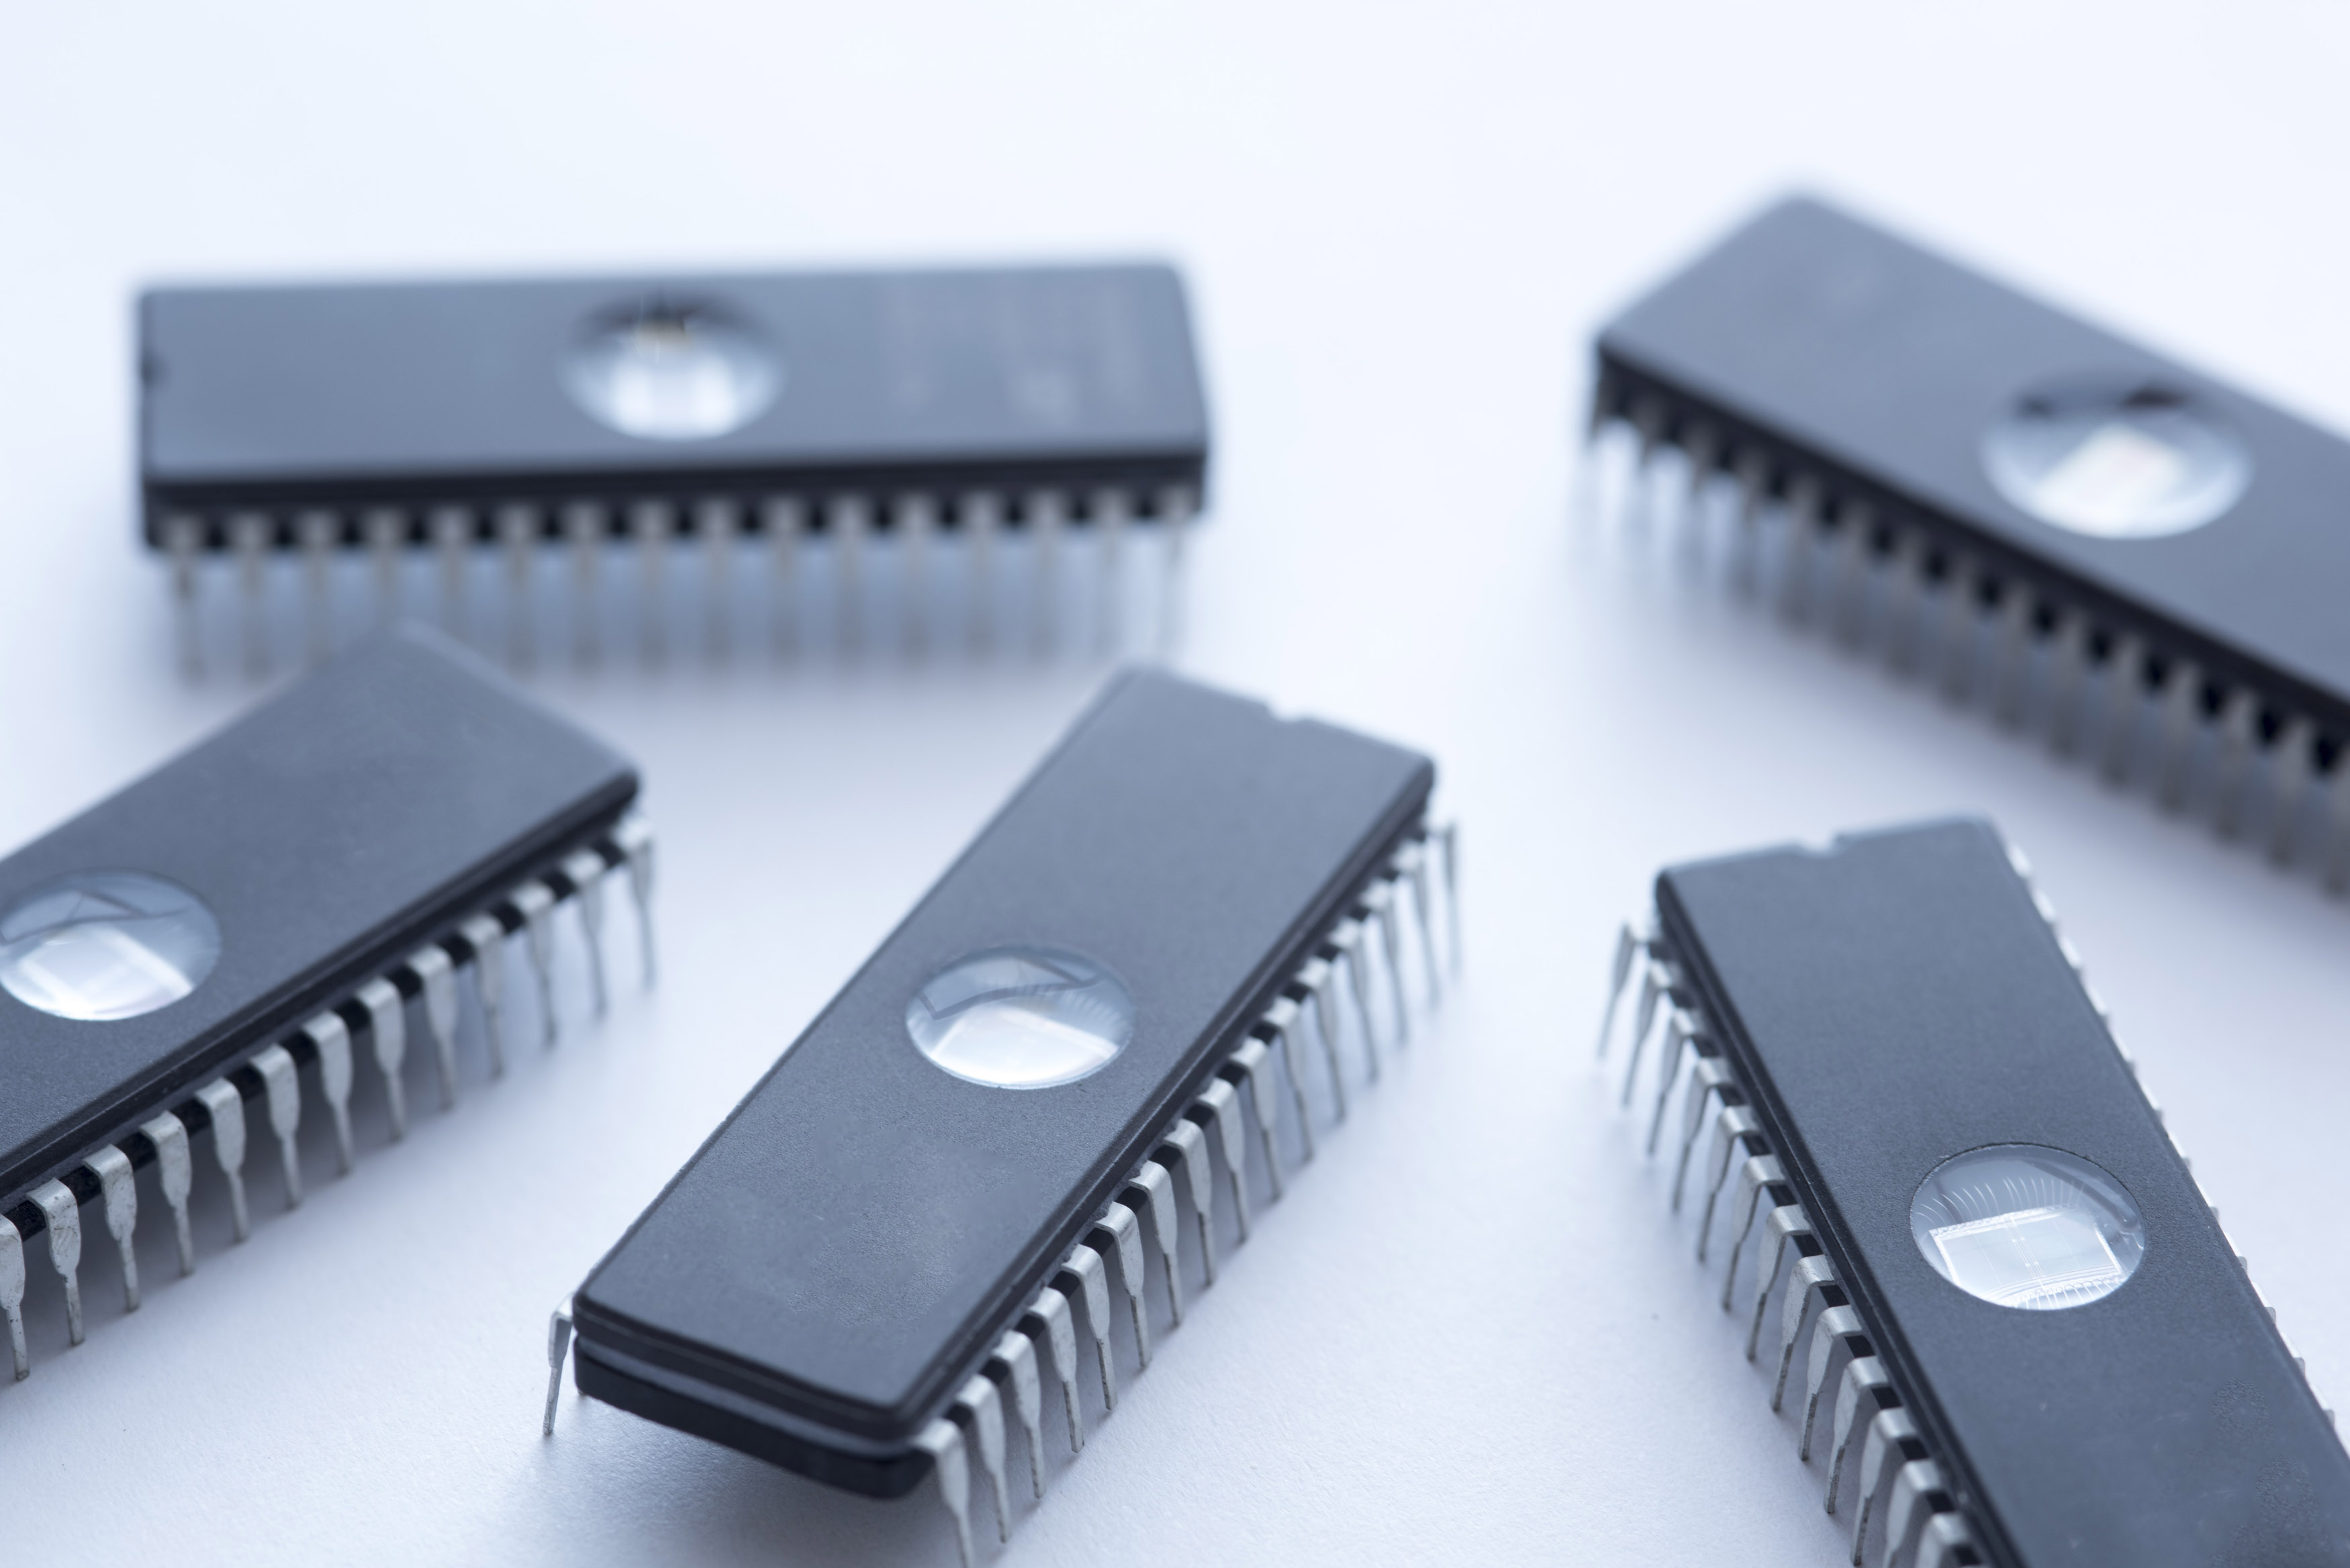 Free Stock Photo 13769 Integrated Circuit Memory Freeimageslive Black Chips Eeprom On White Surface Background